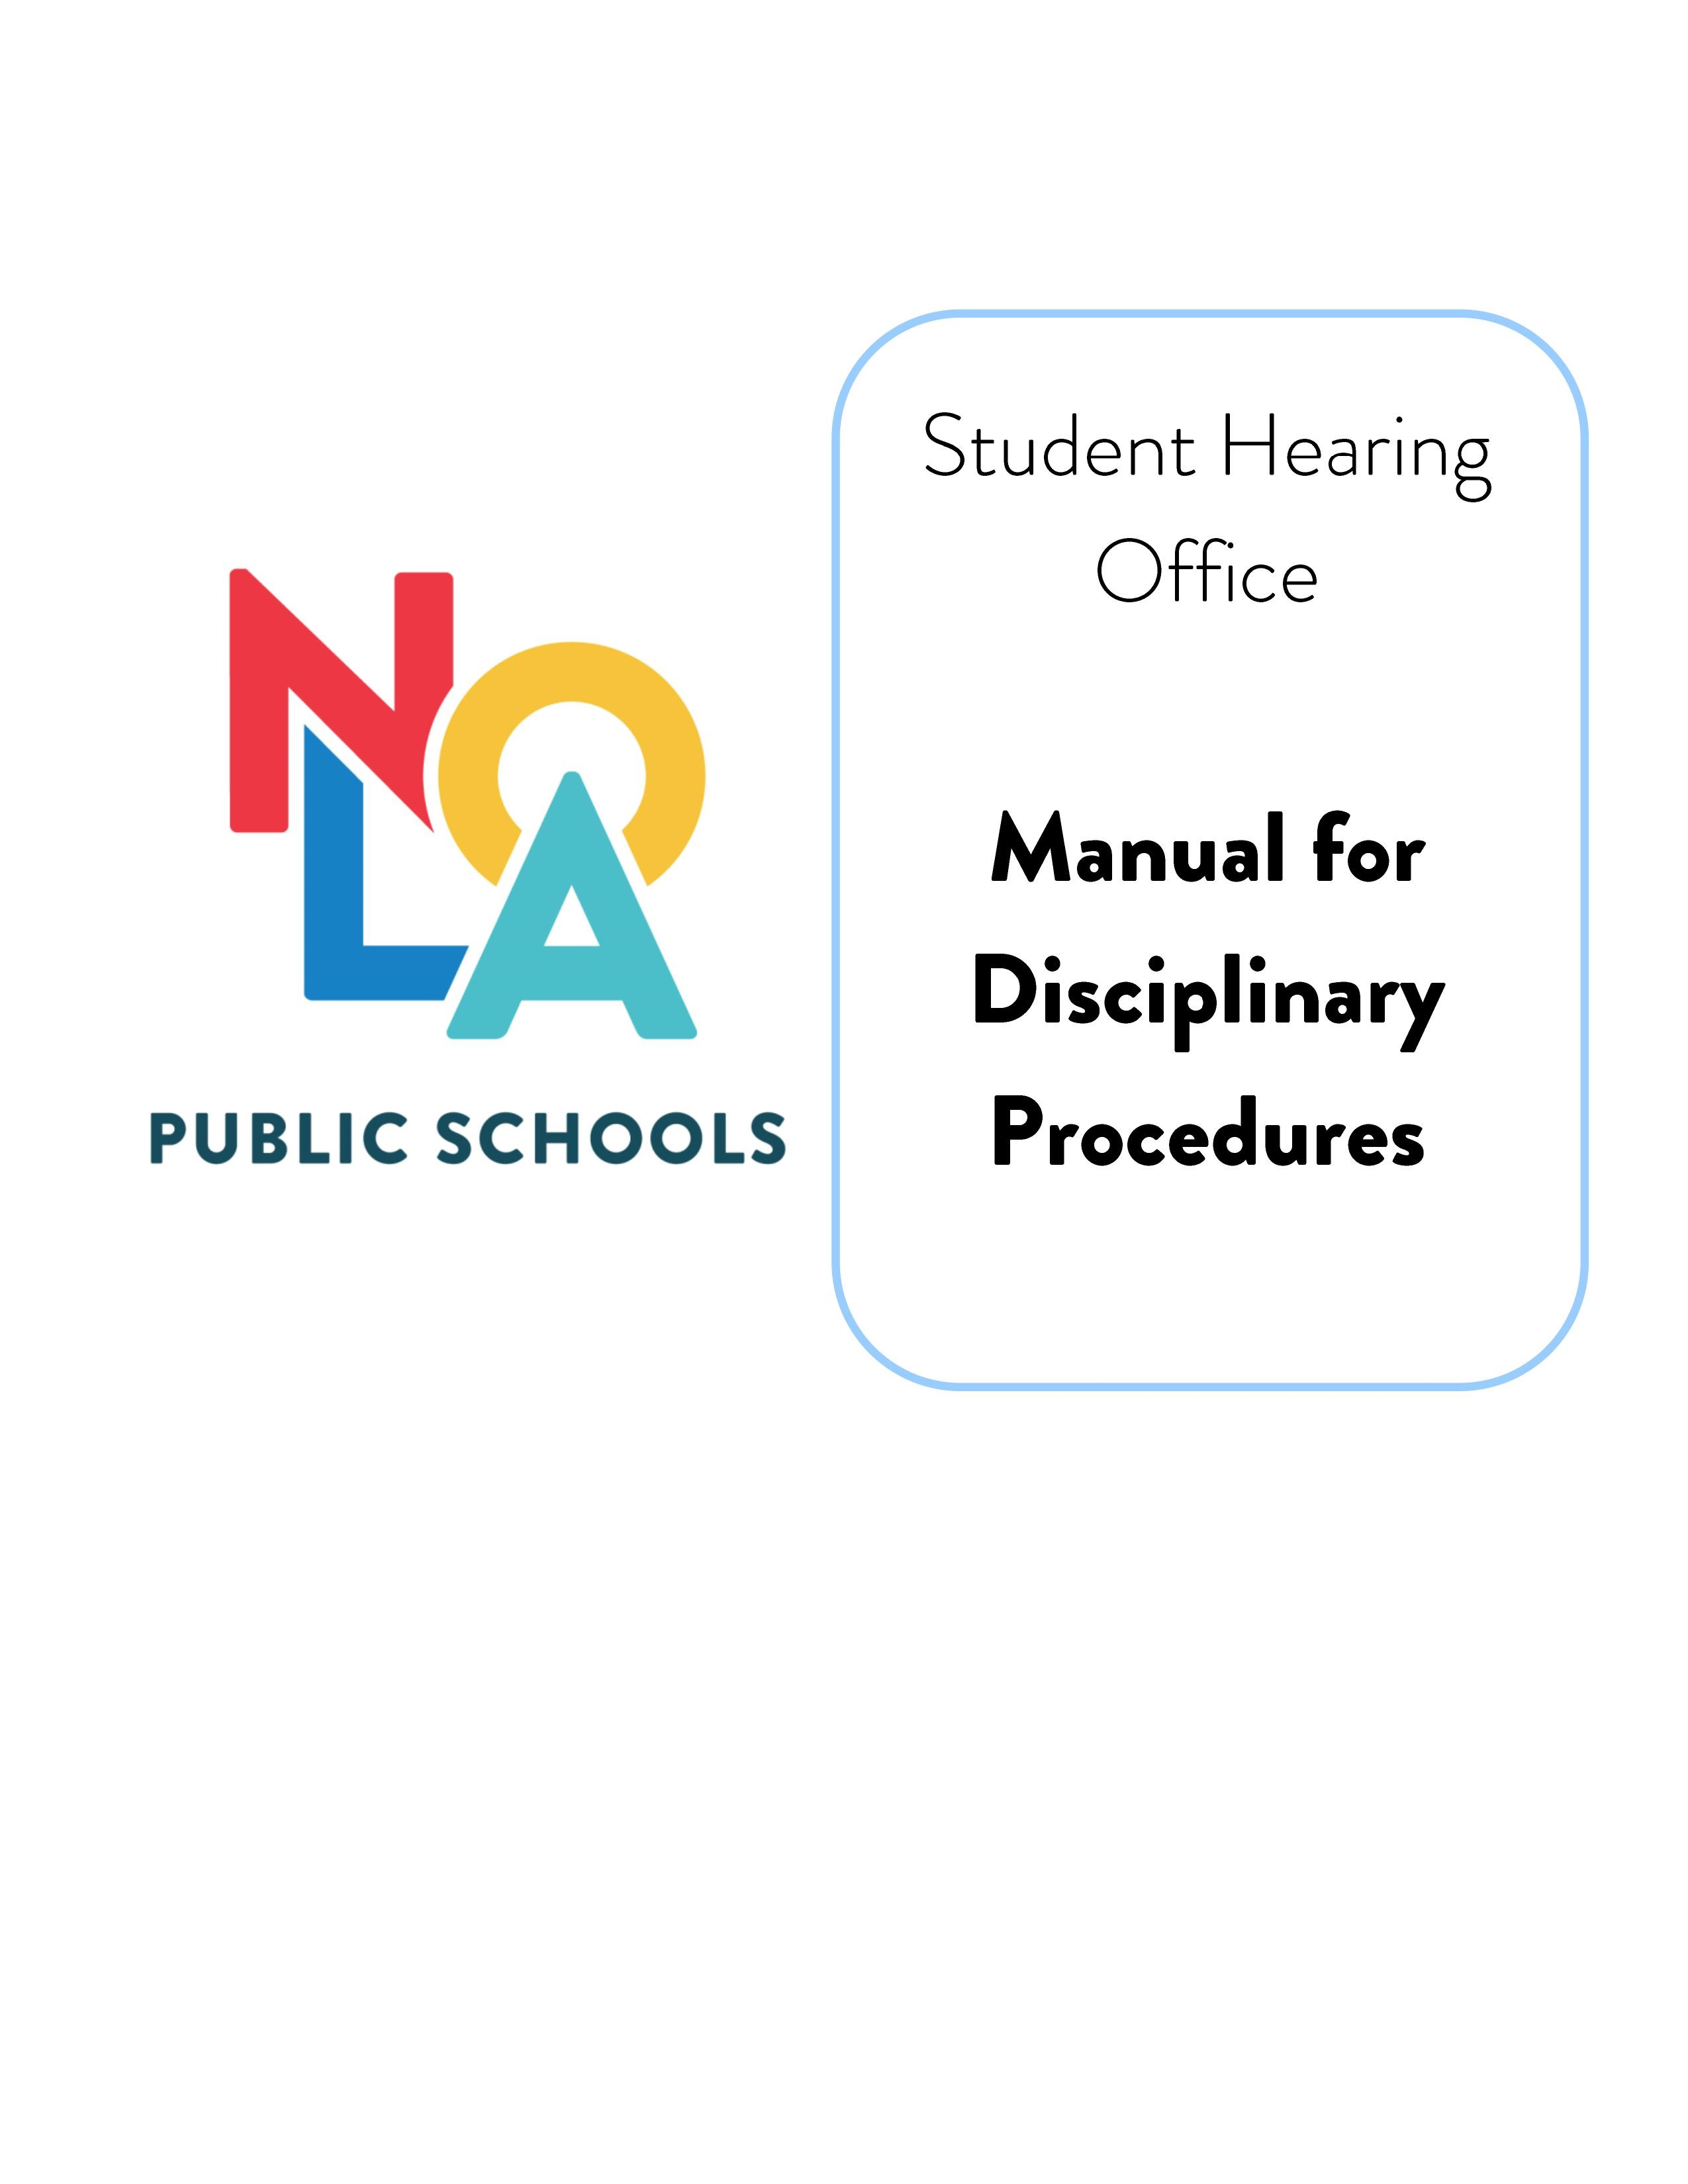 Front page of Student Hearing Office Manual